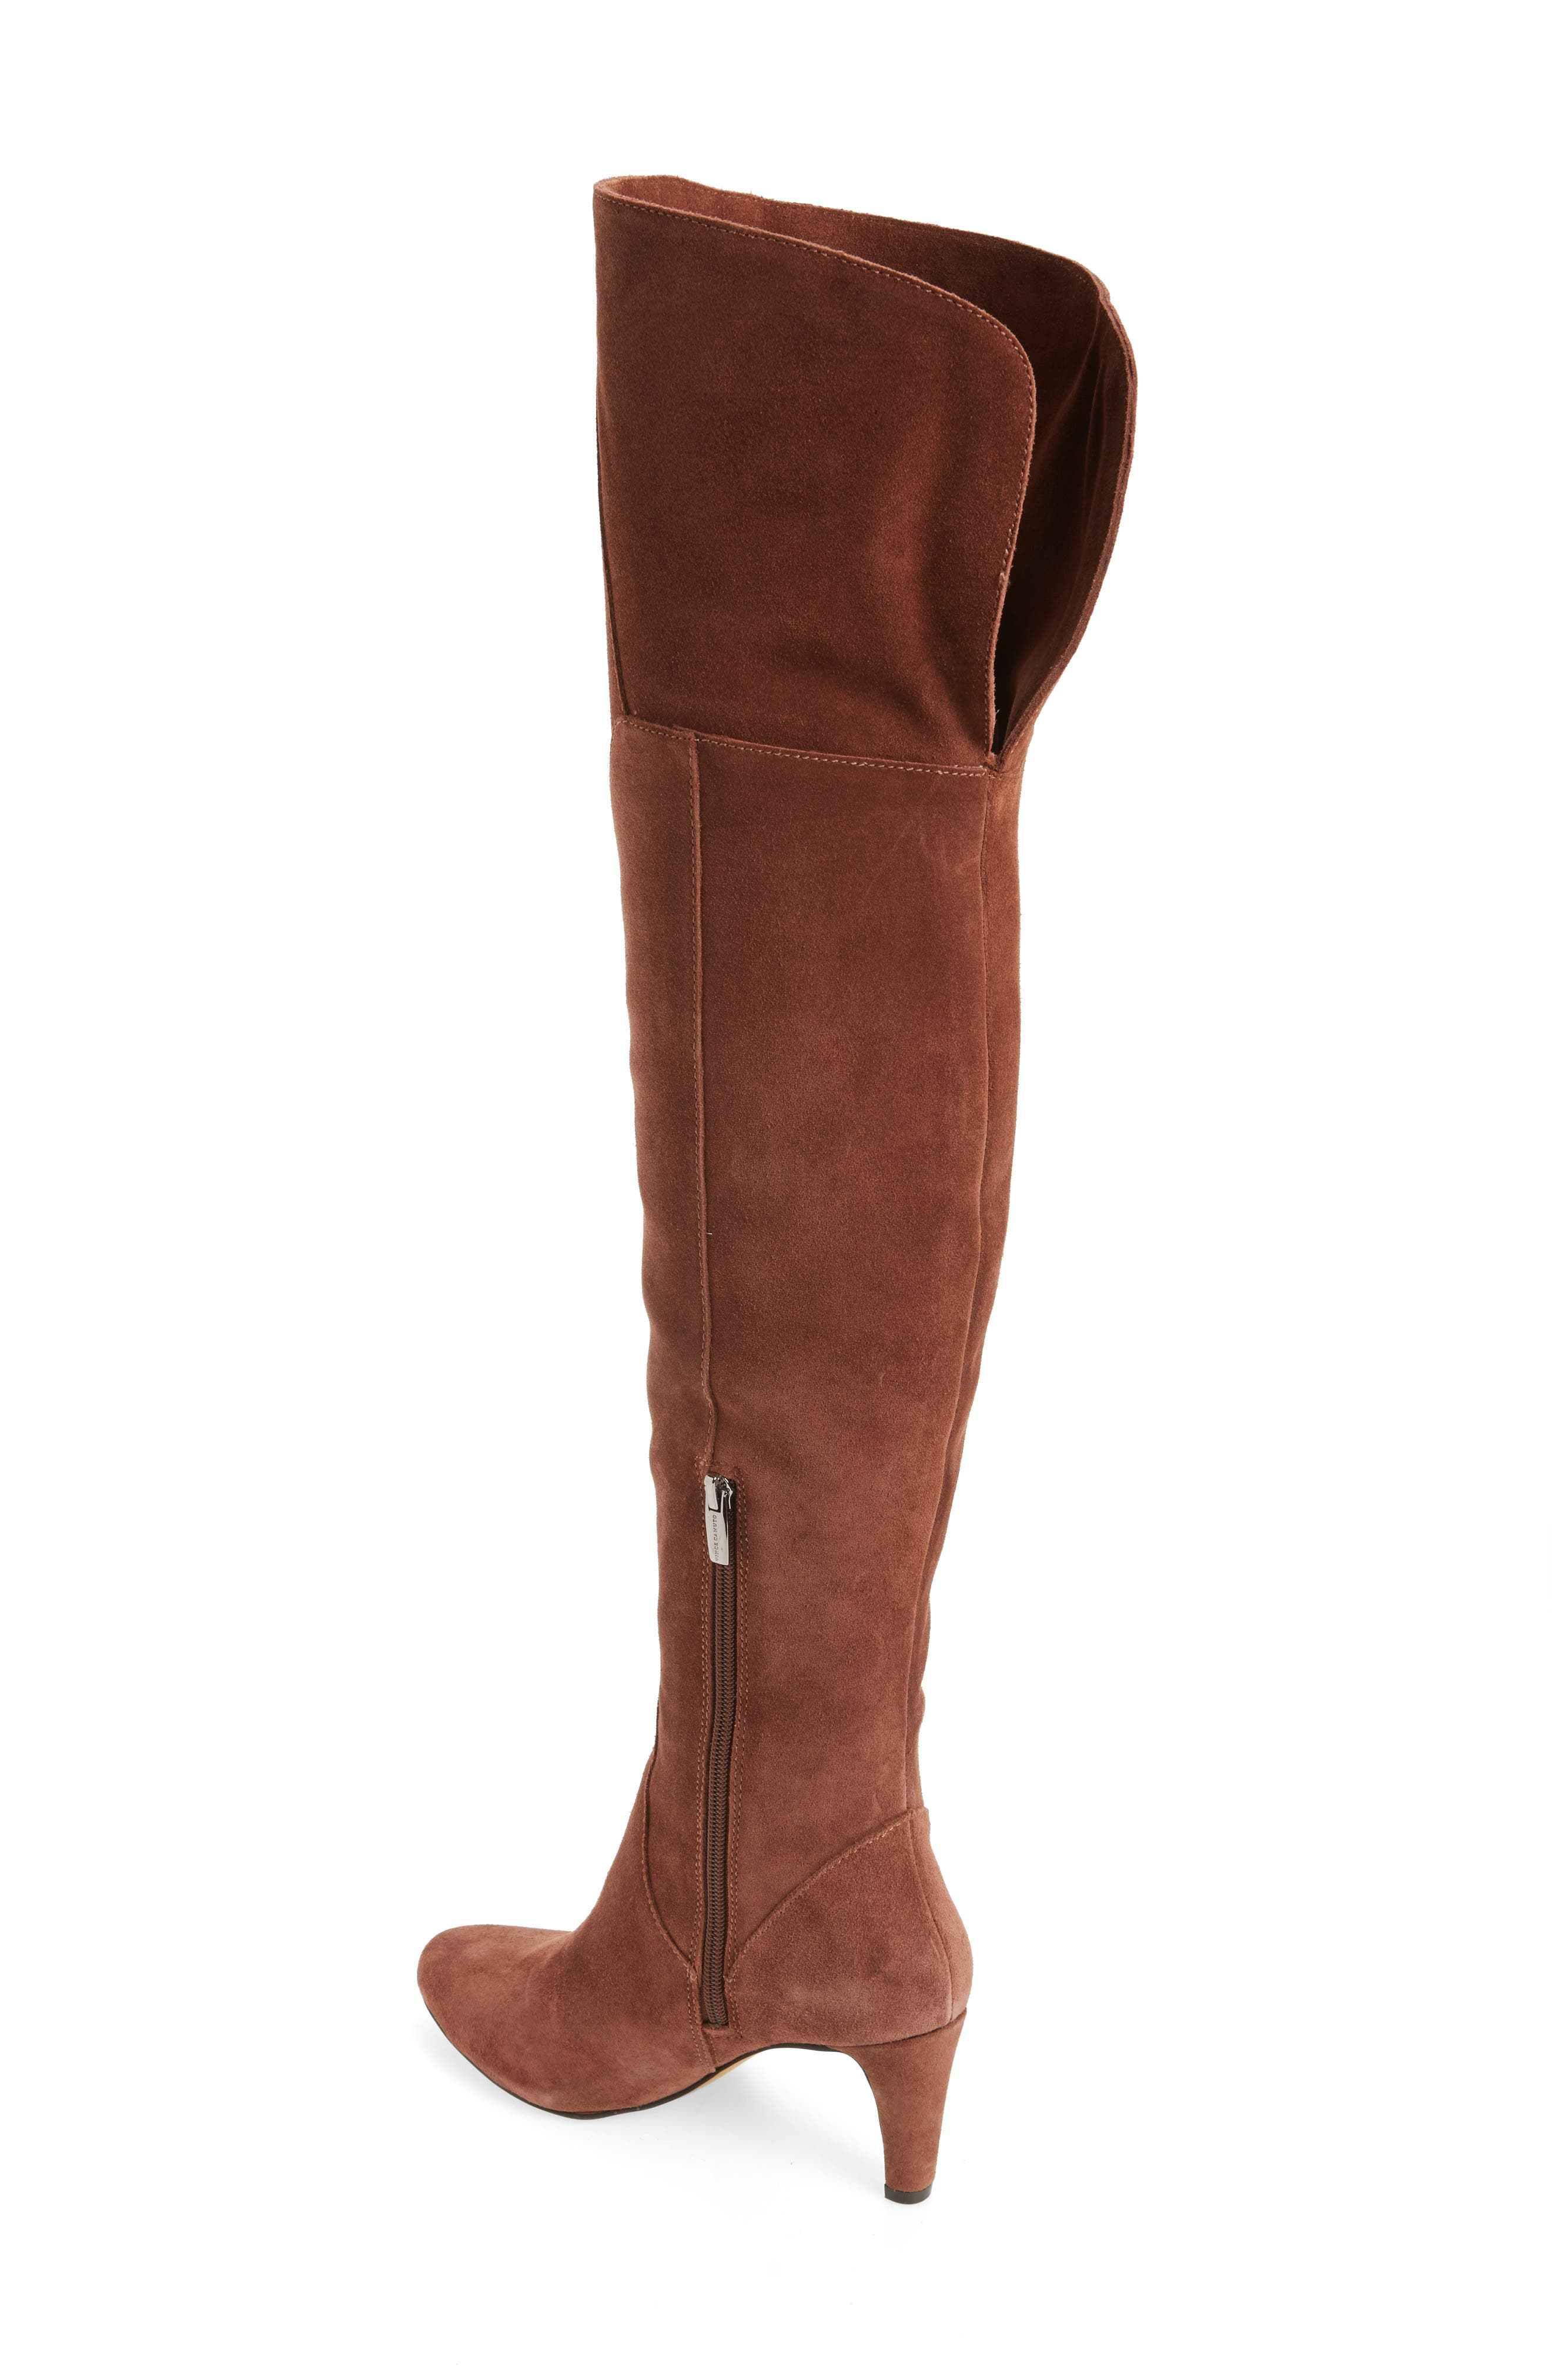 Armaceli Over the Knee Boot,                             Alternate thumbnail 6, color,